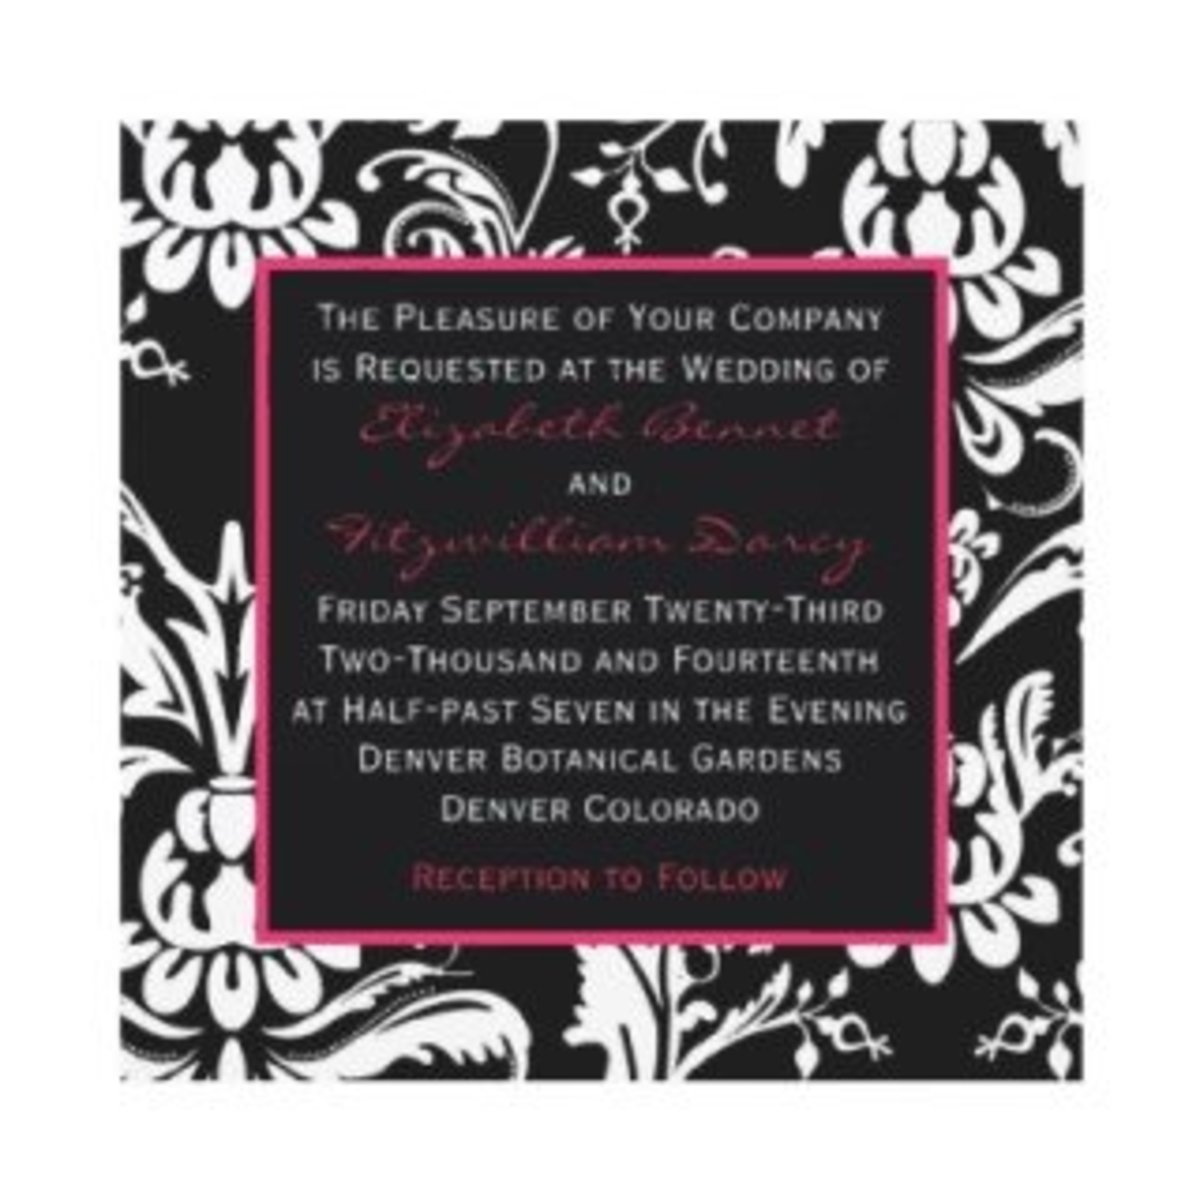 Black, White & Pink Wedding Ideas: Wedding Color Themes